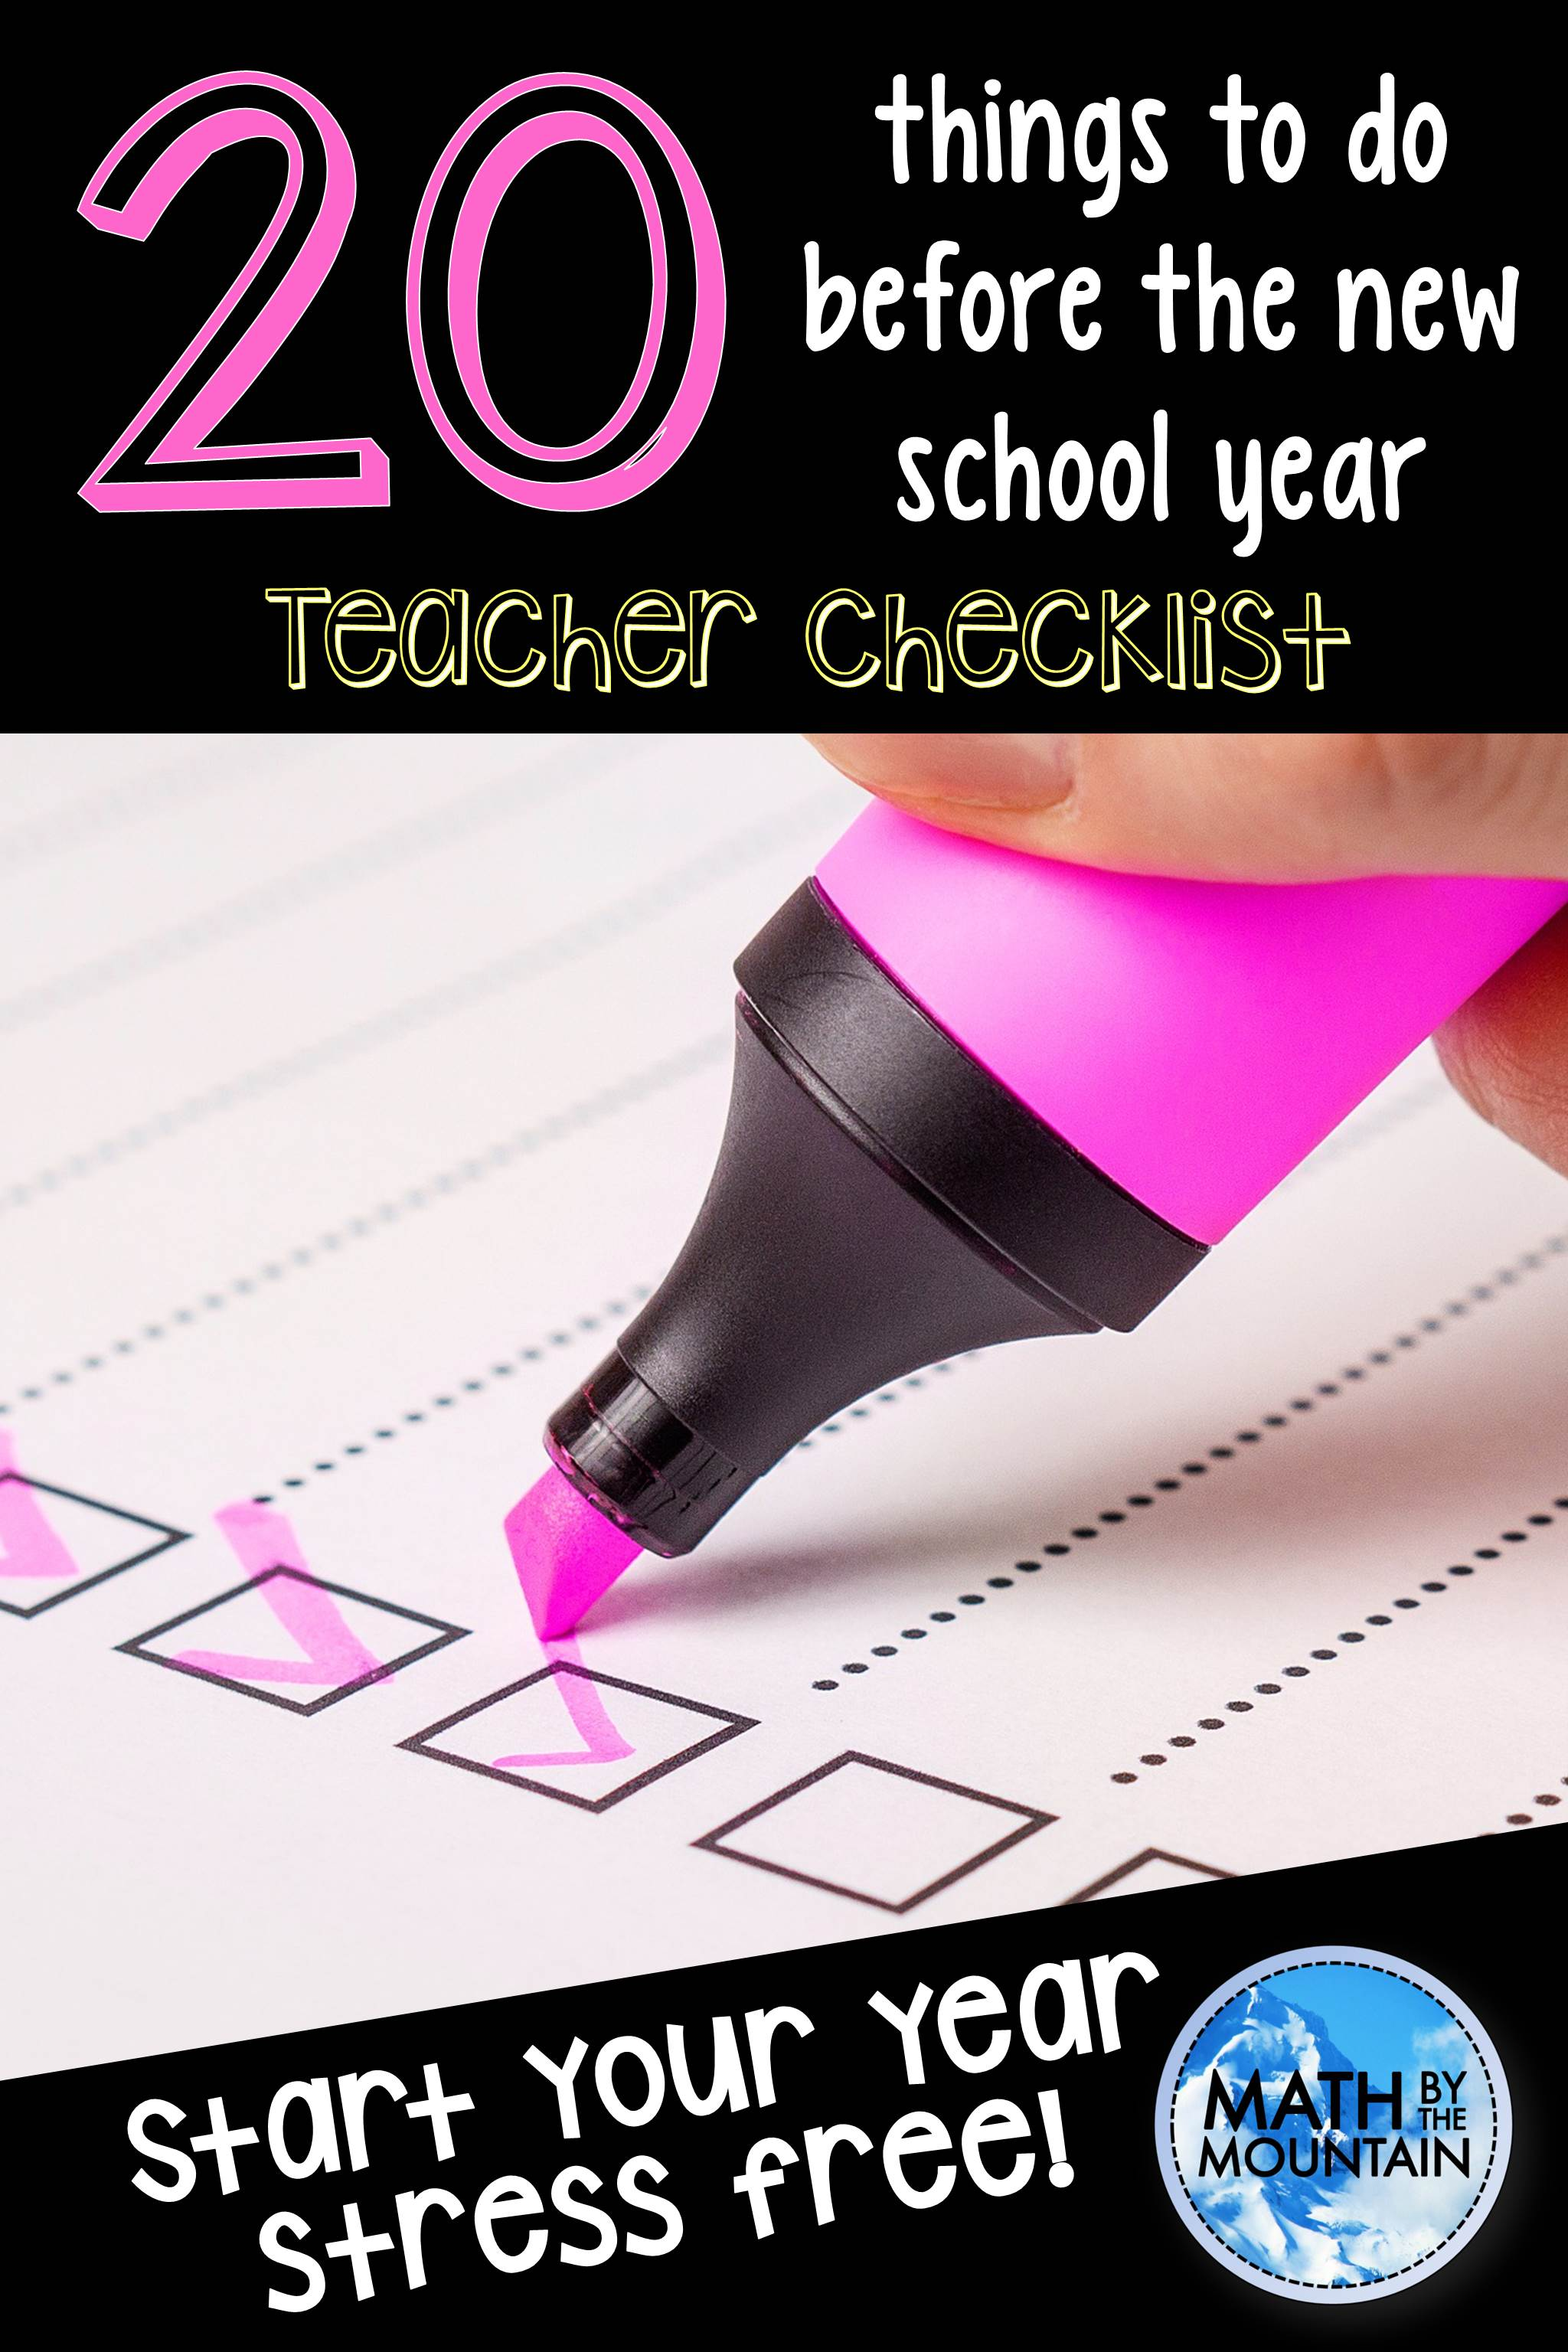 bts teacher checklist